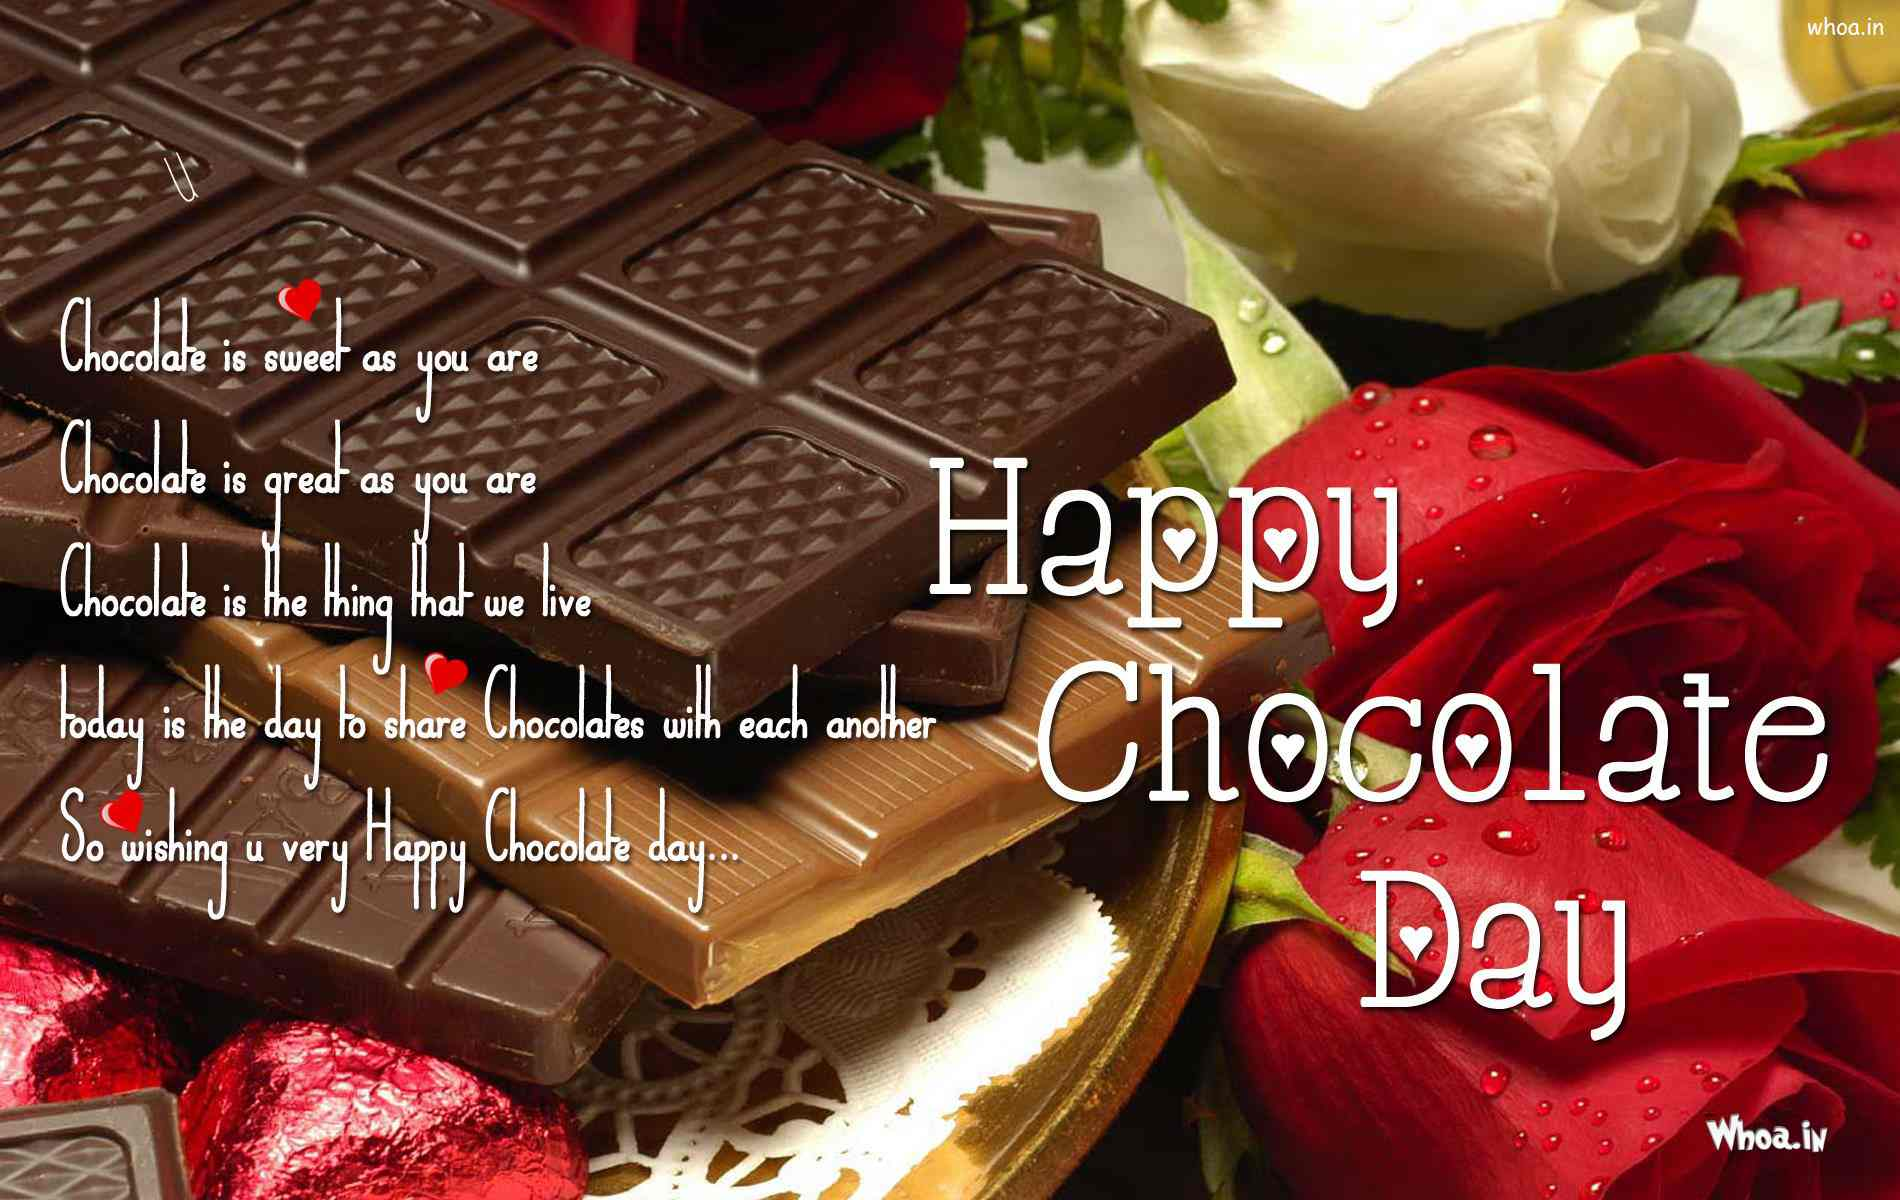 Happy Chocolate Day 2017 Images, Pictures and Graphics for ...